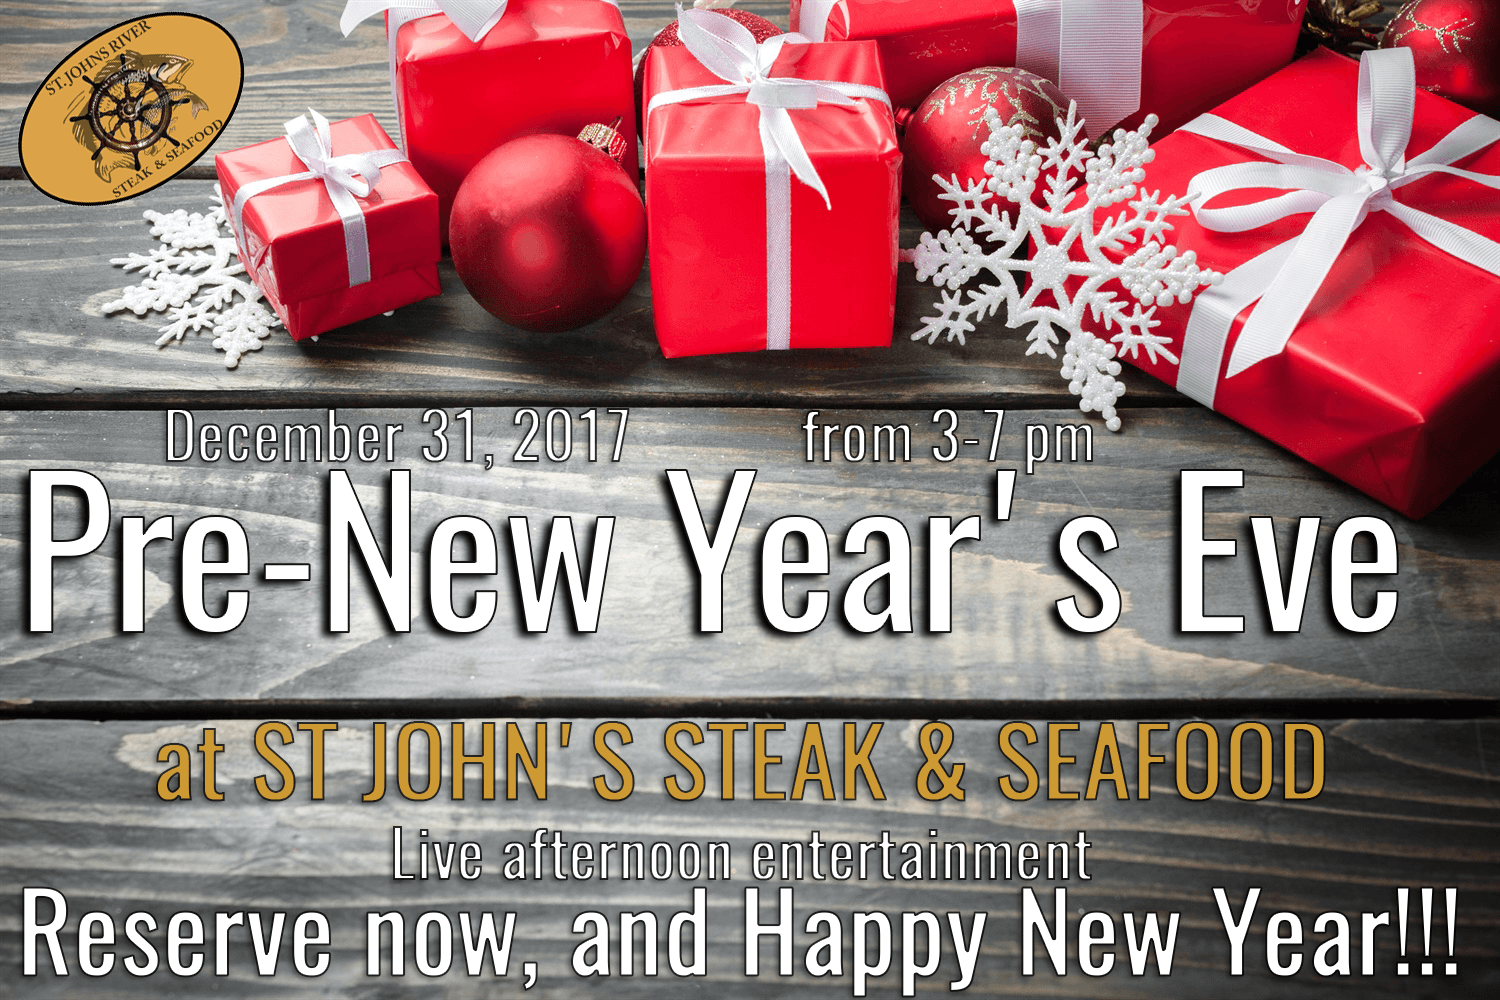 Pre-New Year's Eve at St John's Steak & Seafood - December 31, 2017